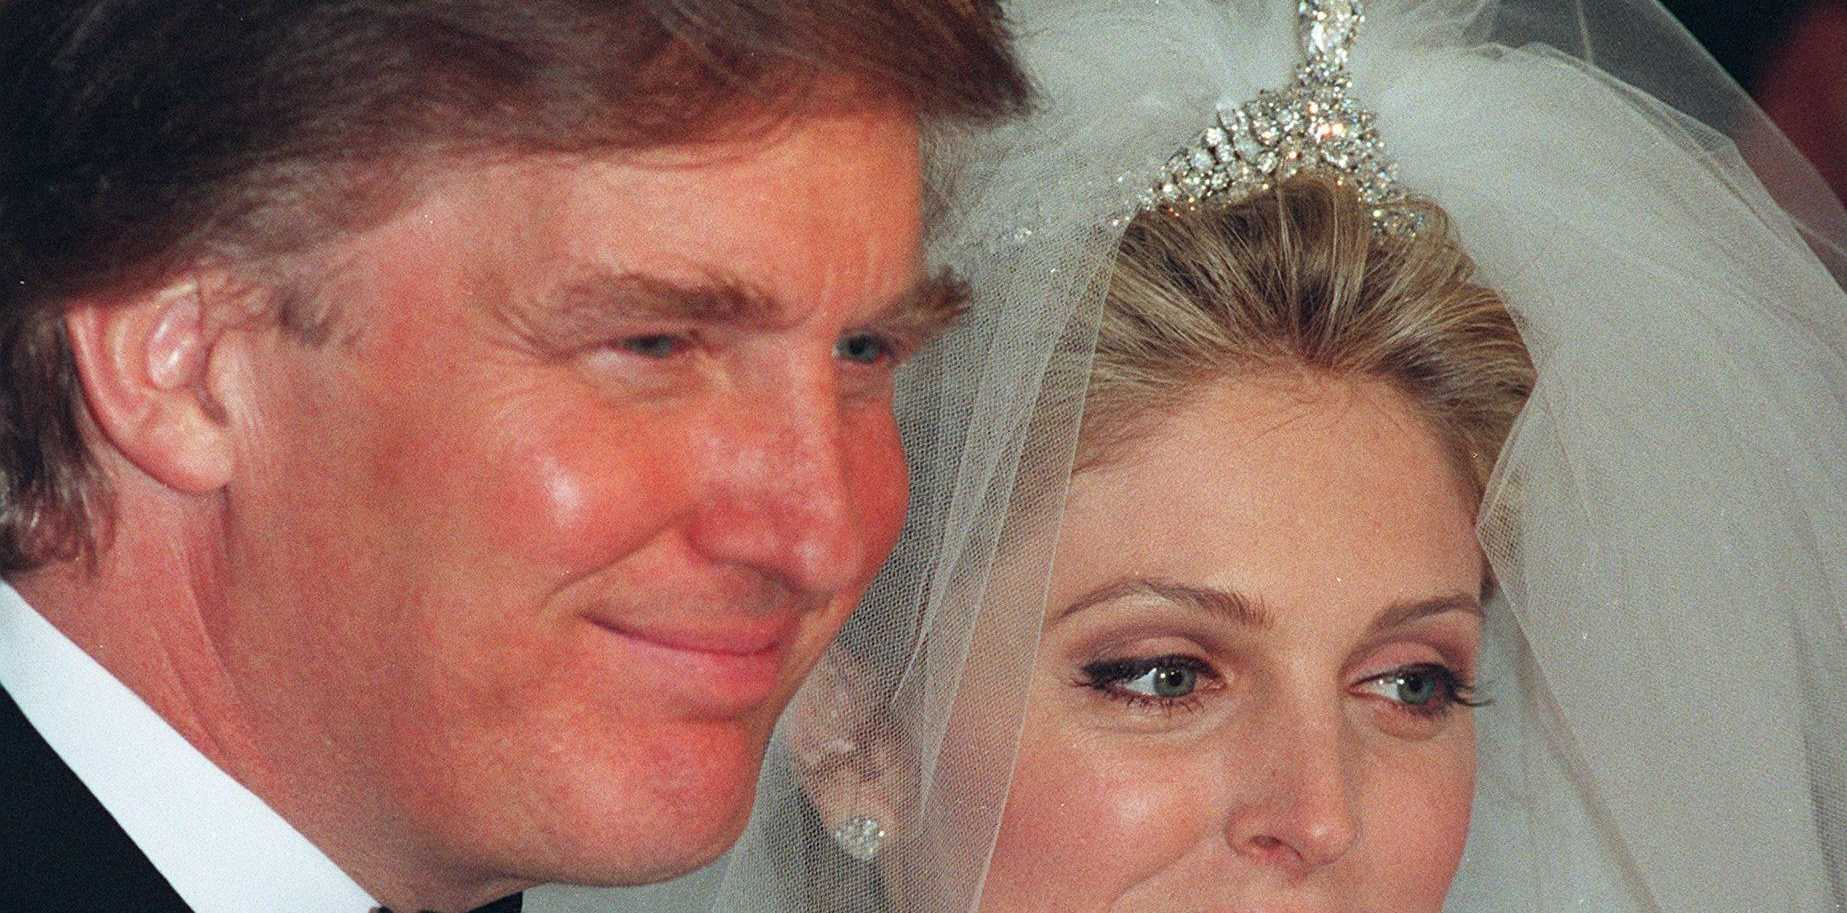 Donald Trump and Marla Maples on their wedding day